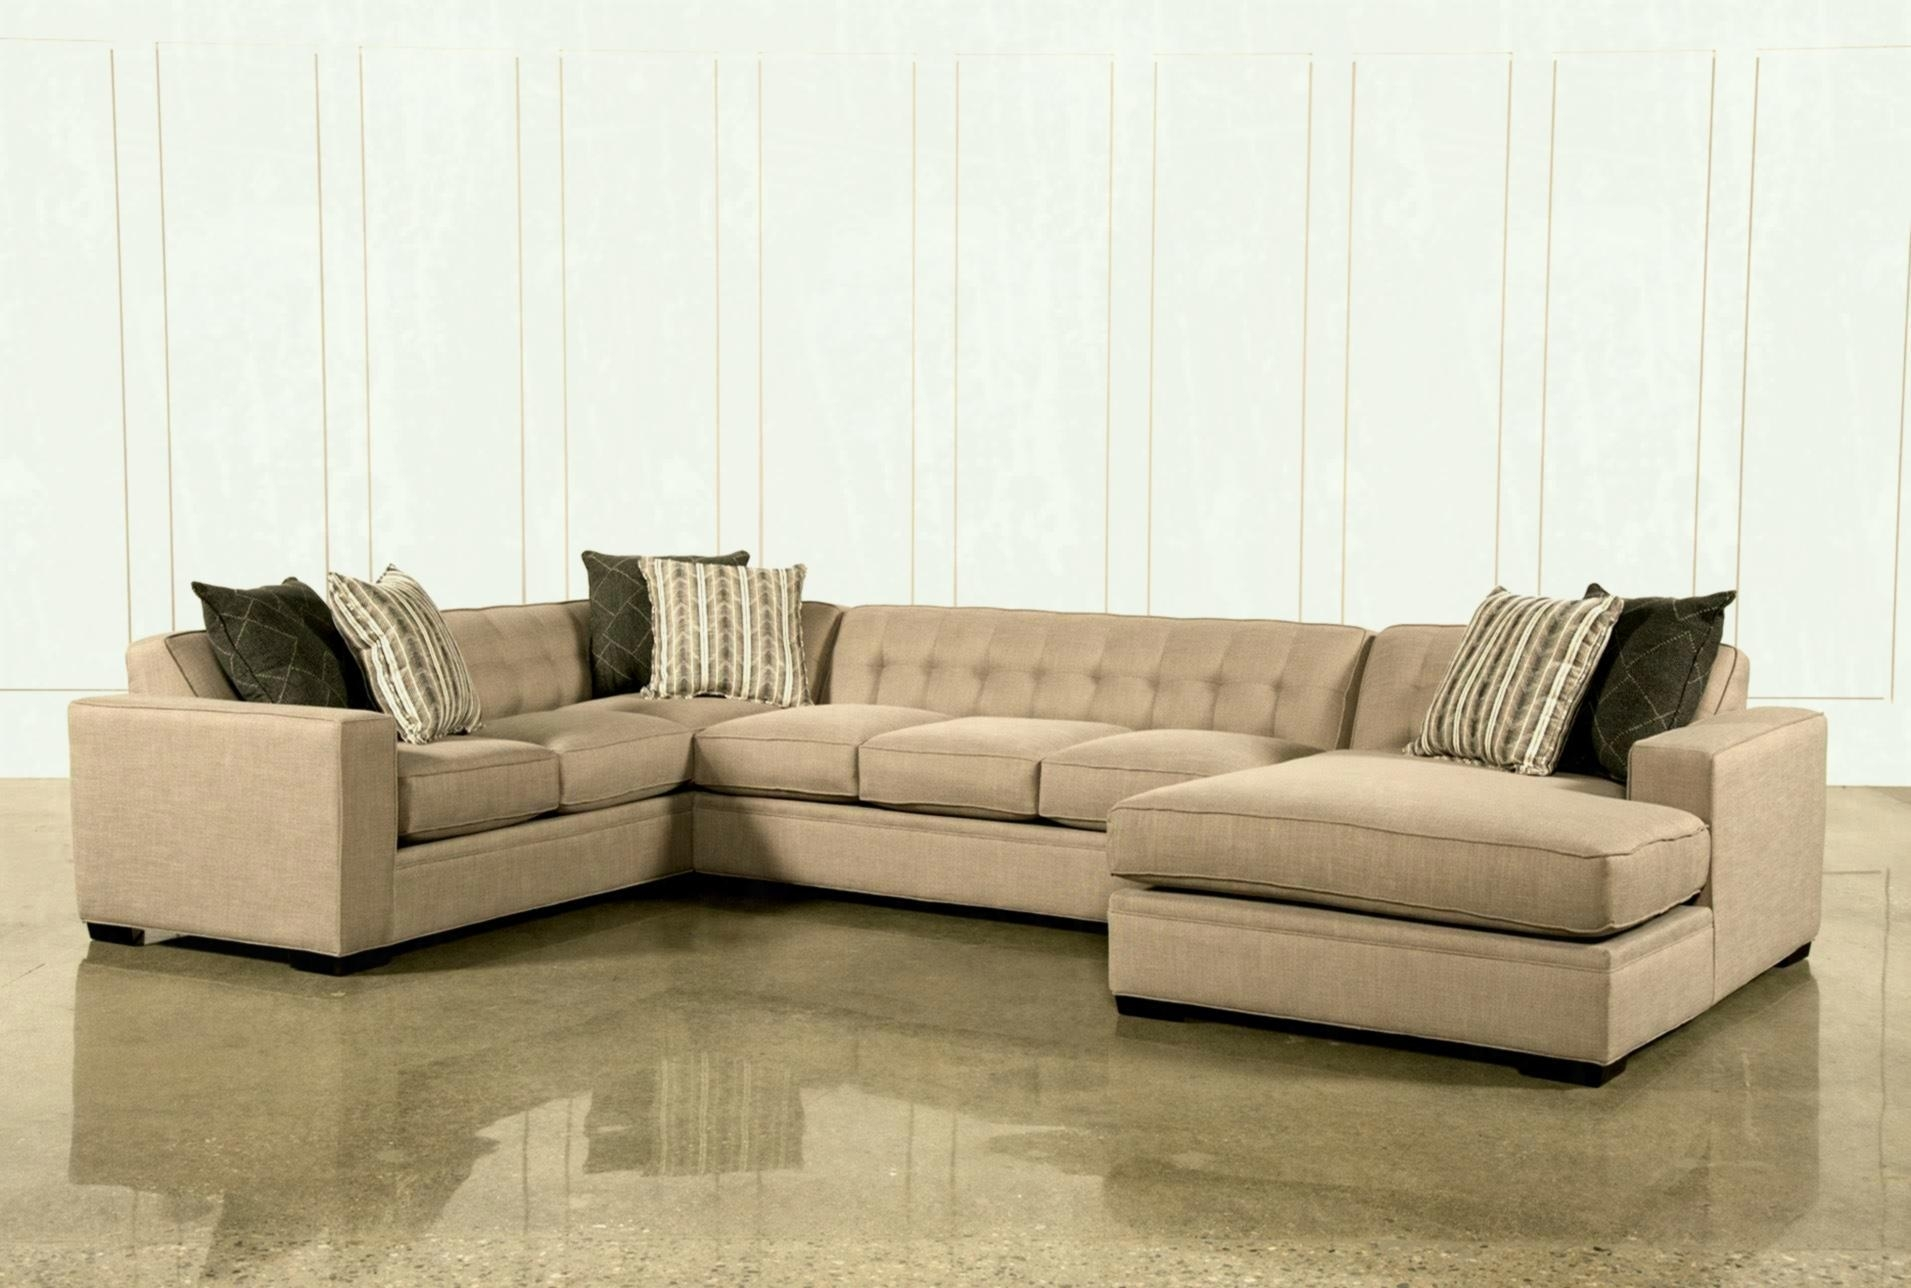 Living Spaces Sectional – Tidex With Sierra Down 3 Piece Sectionals With Laf Chaise (View 11 of 25)